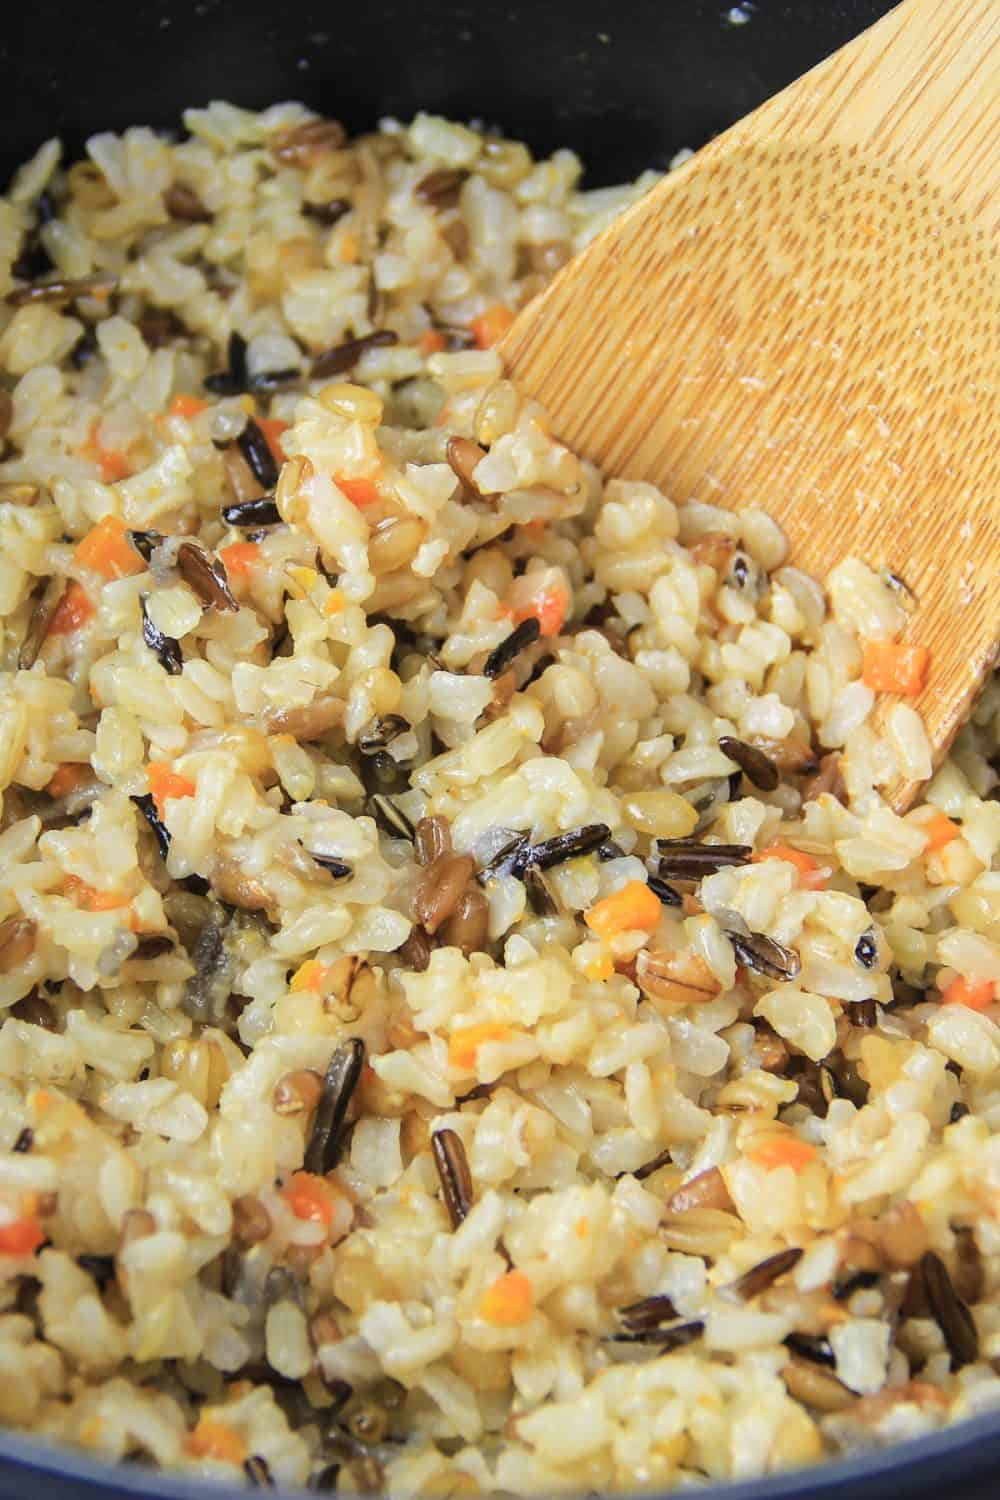 A wooden spoon stirs wild brown rice in a skillet